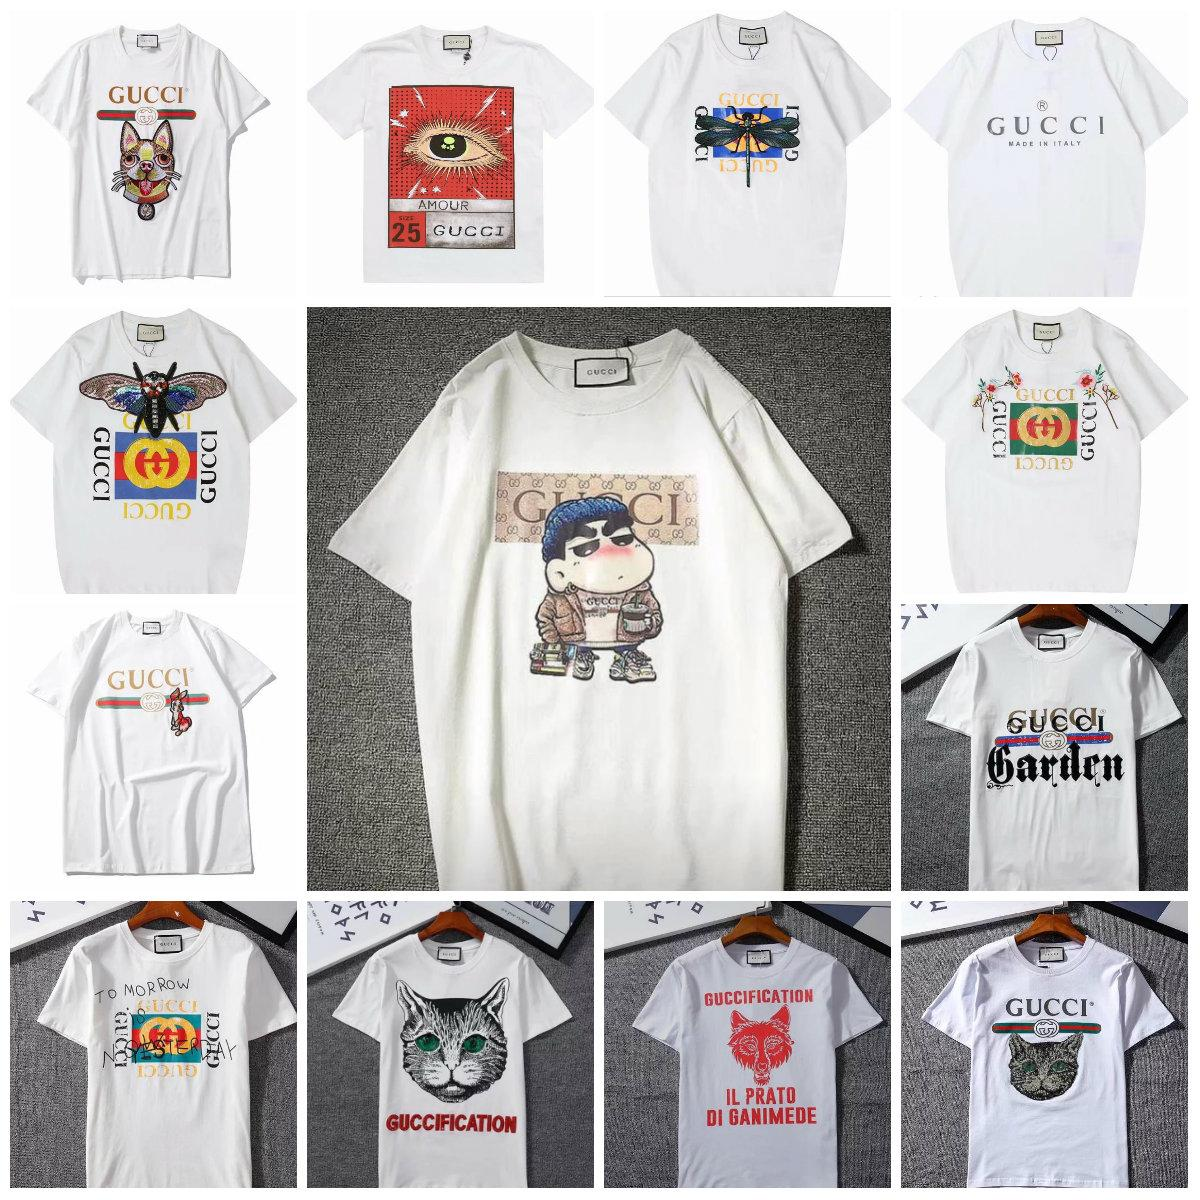 2018 Fashion Designer Luxury Europe Italie T-Shirt Hommes Kanye West T-Shirt Casual Coton Tee Top Shirts